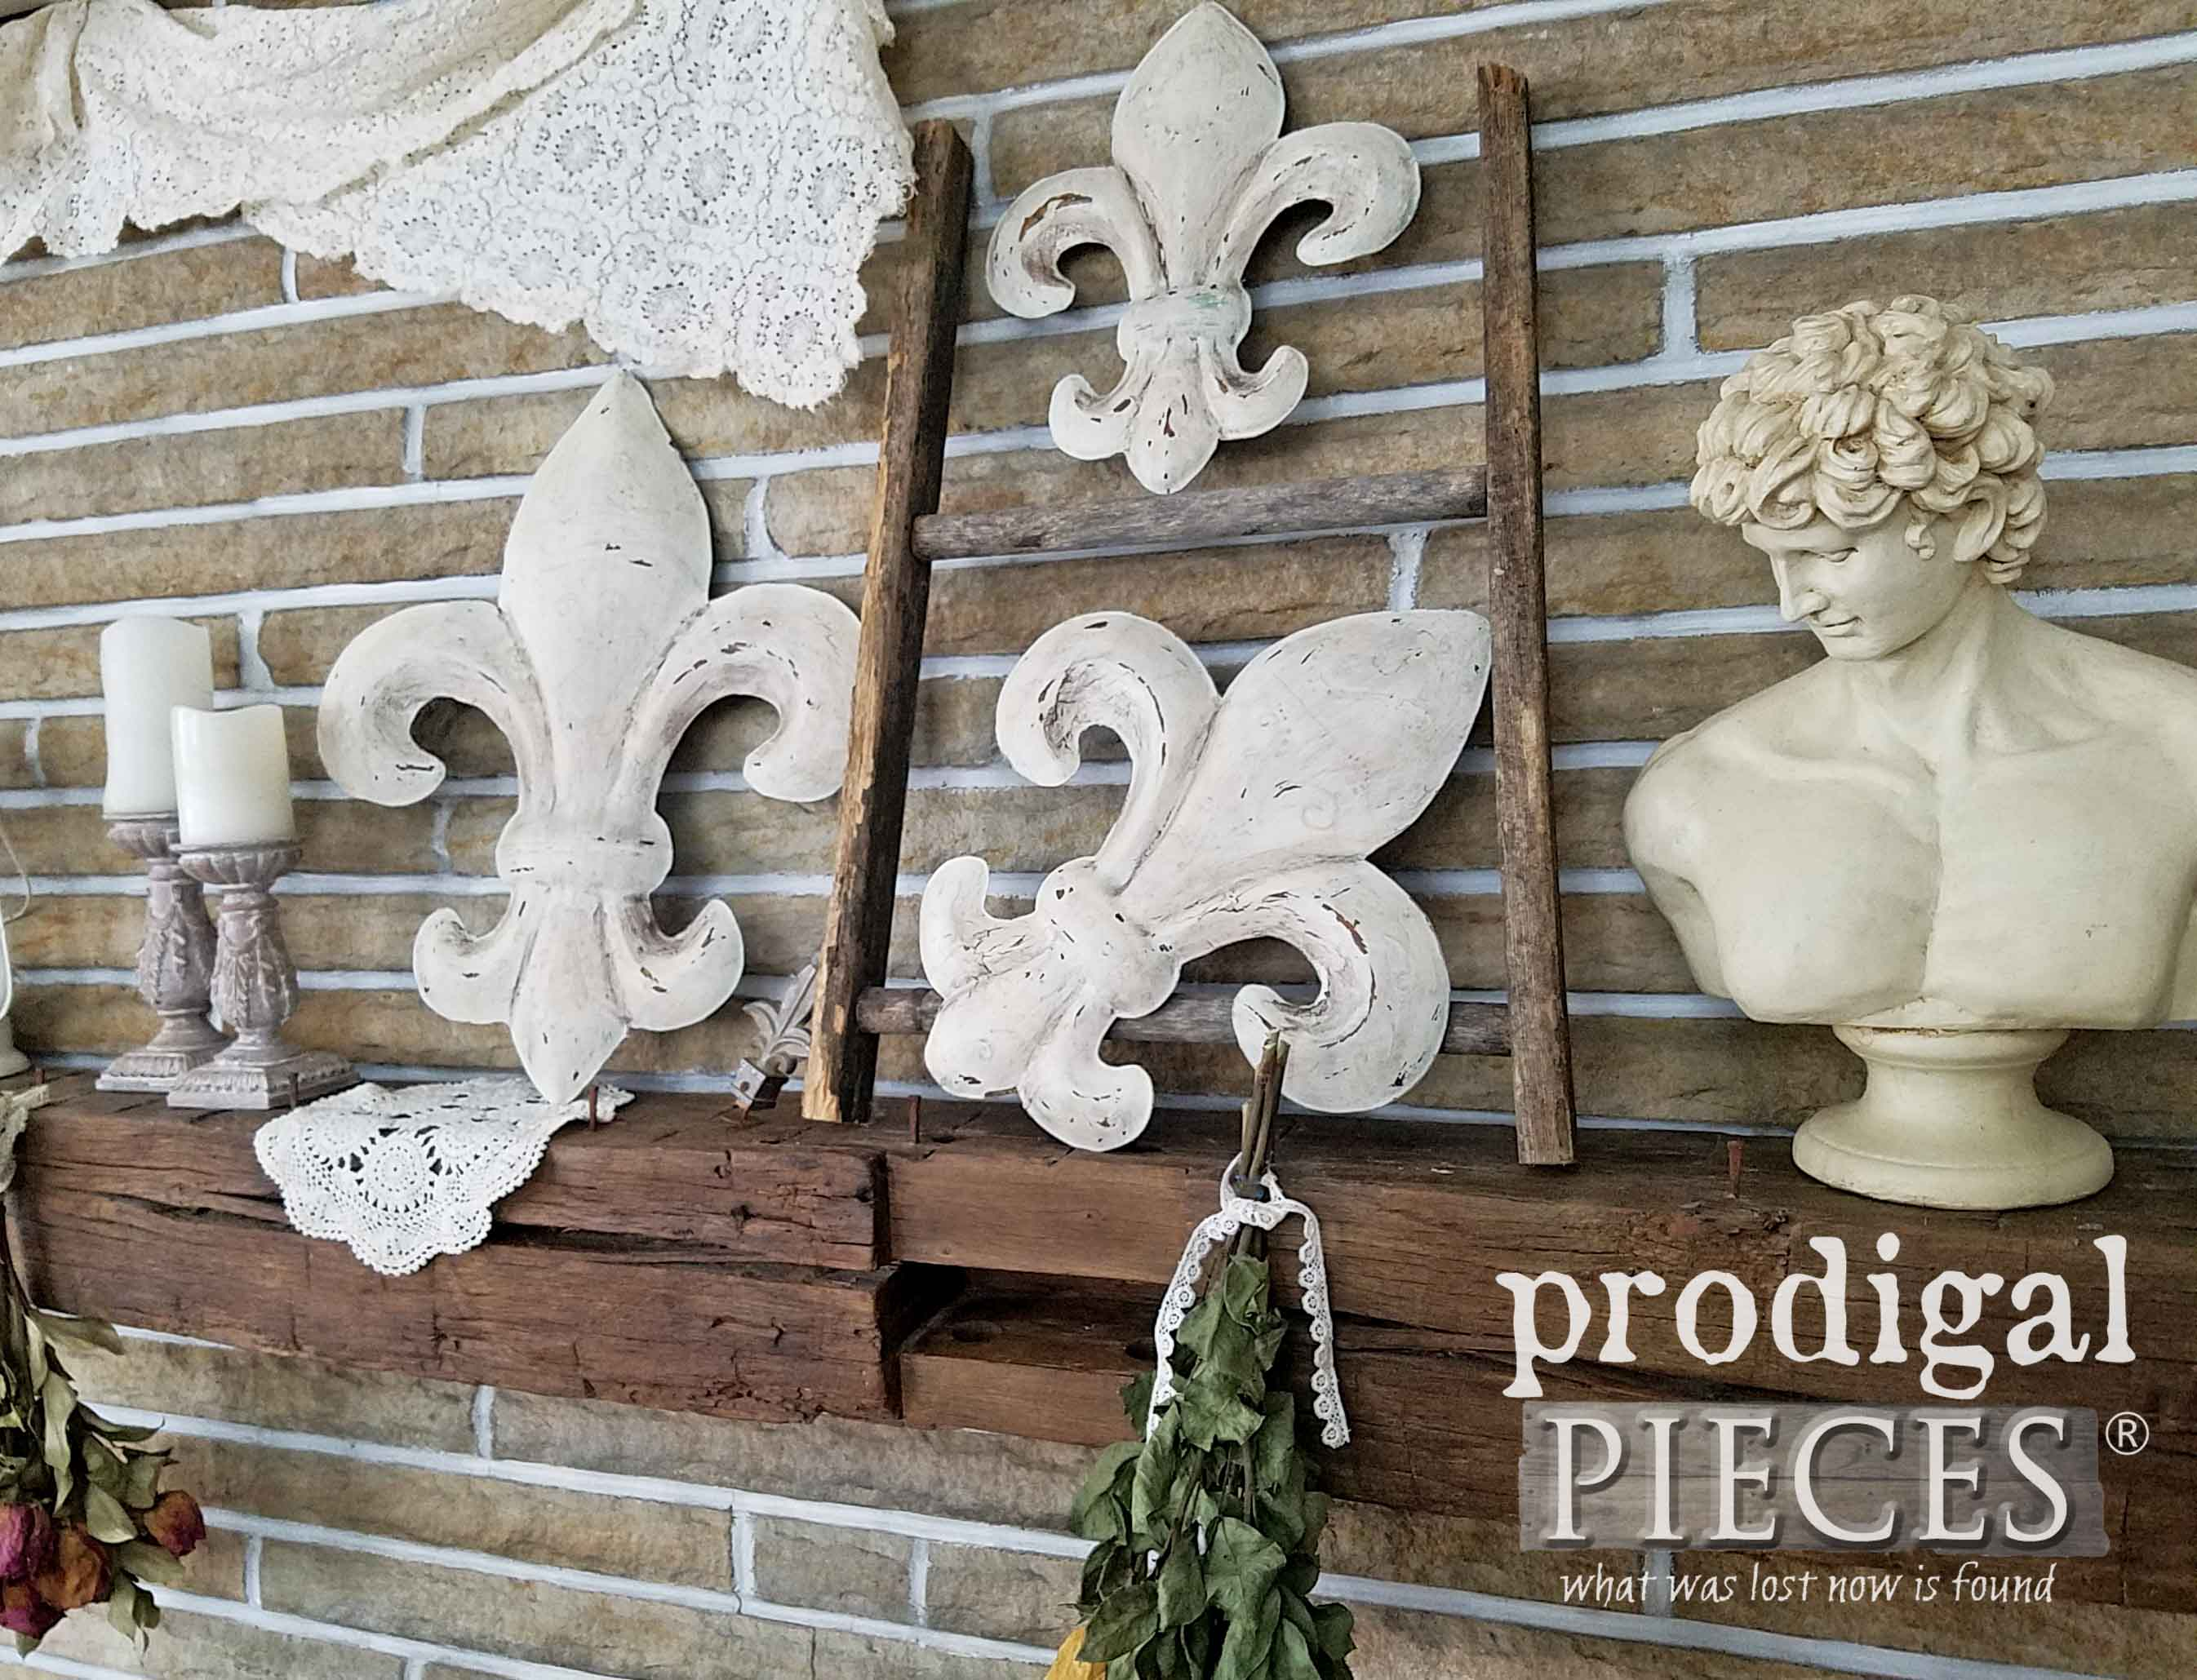 Collected Thrifted Items Make for a Rustic Farmhouse Chic Mantel Display. See more at Prodigal Pieces | prodigalpieces.com